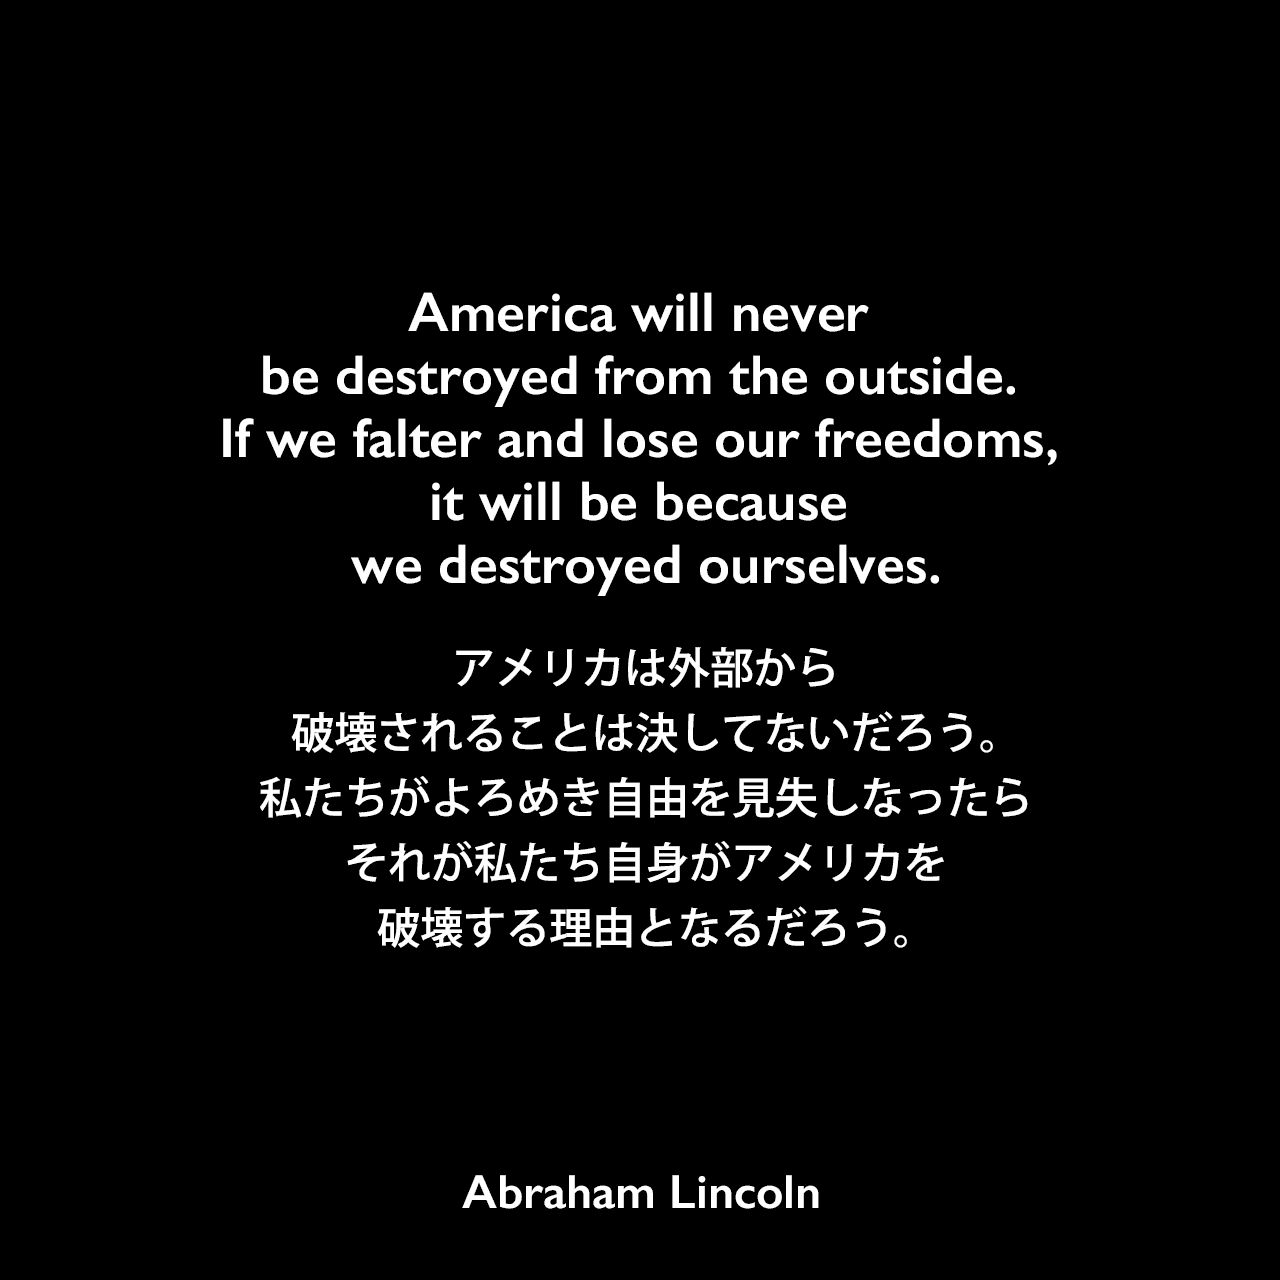 America will never be destroyed from the outside. If we falter and lose our freedoms, it will be because we destroyed ourselves.アメリカは外部から破壊されることは決してないだろう。私たちがよろめき自由を見失しなったら、それが私たち自身がアメリカを破壊する理由となるだろう。Abraham Lincoln